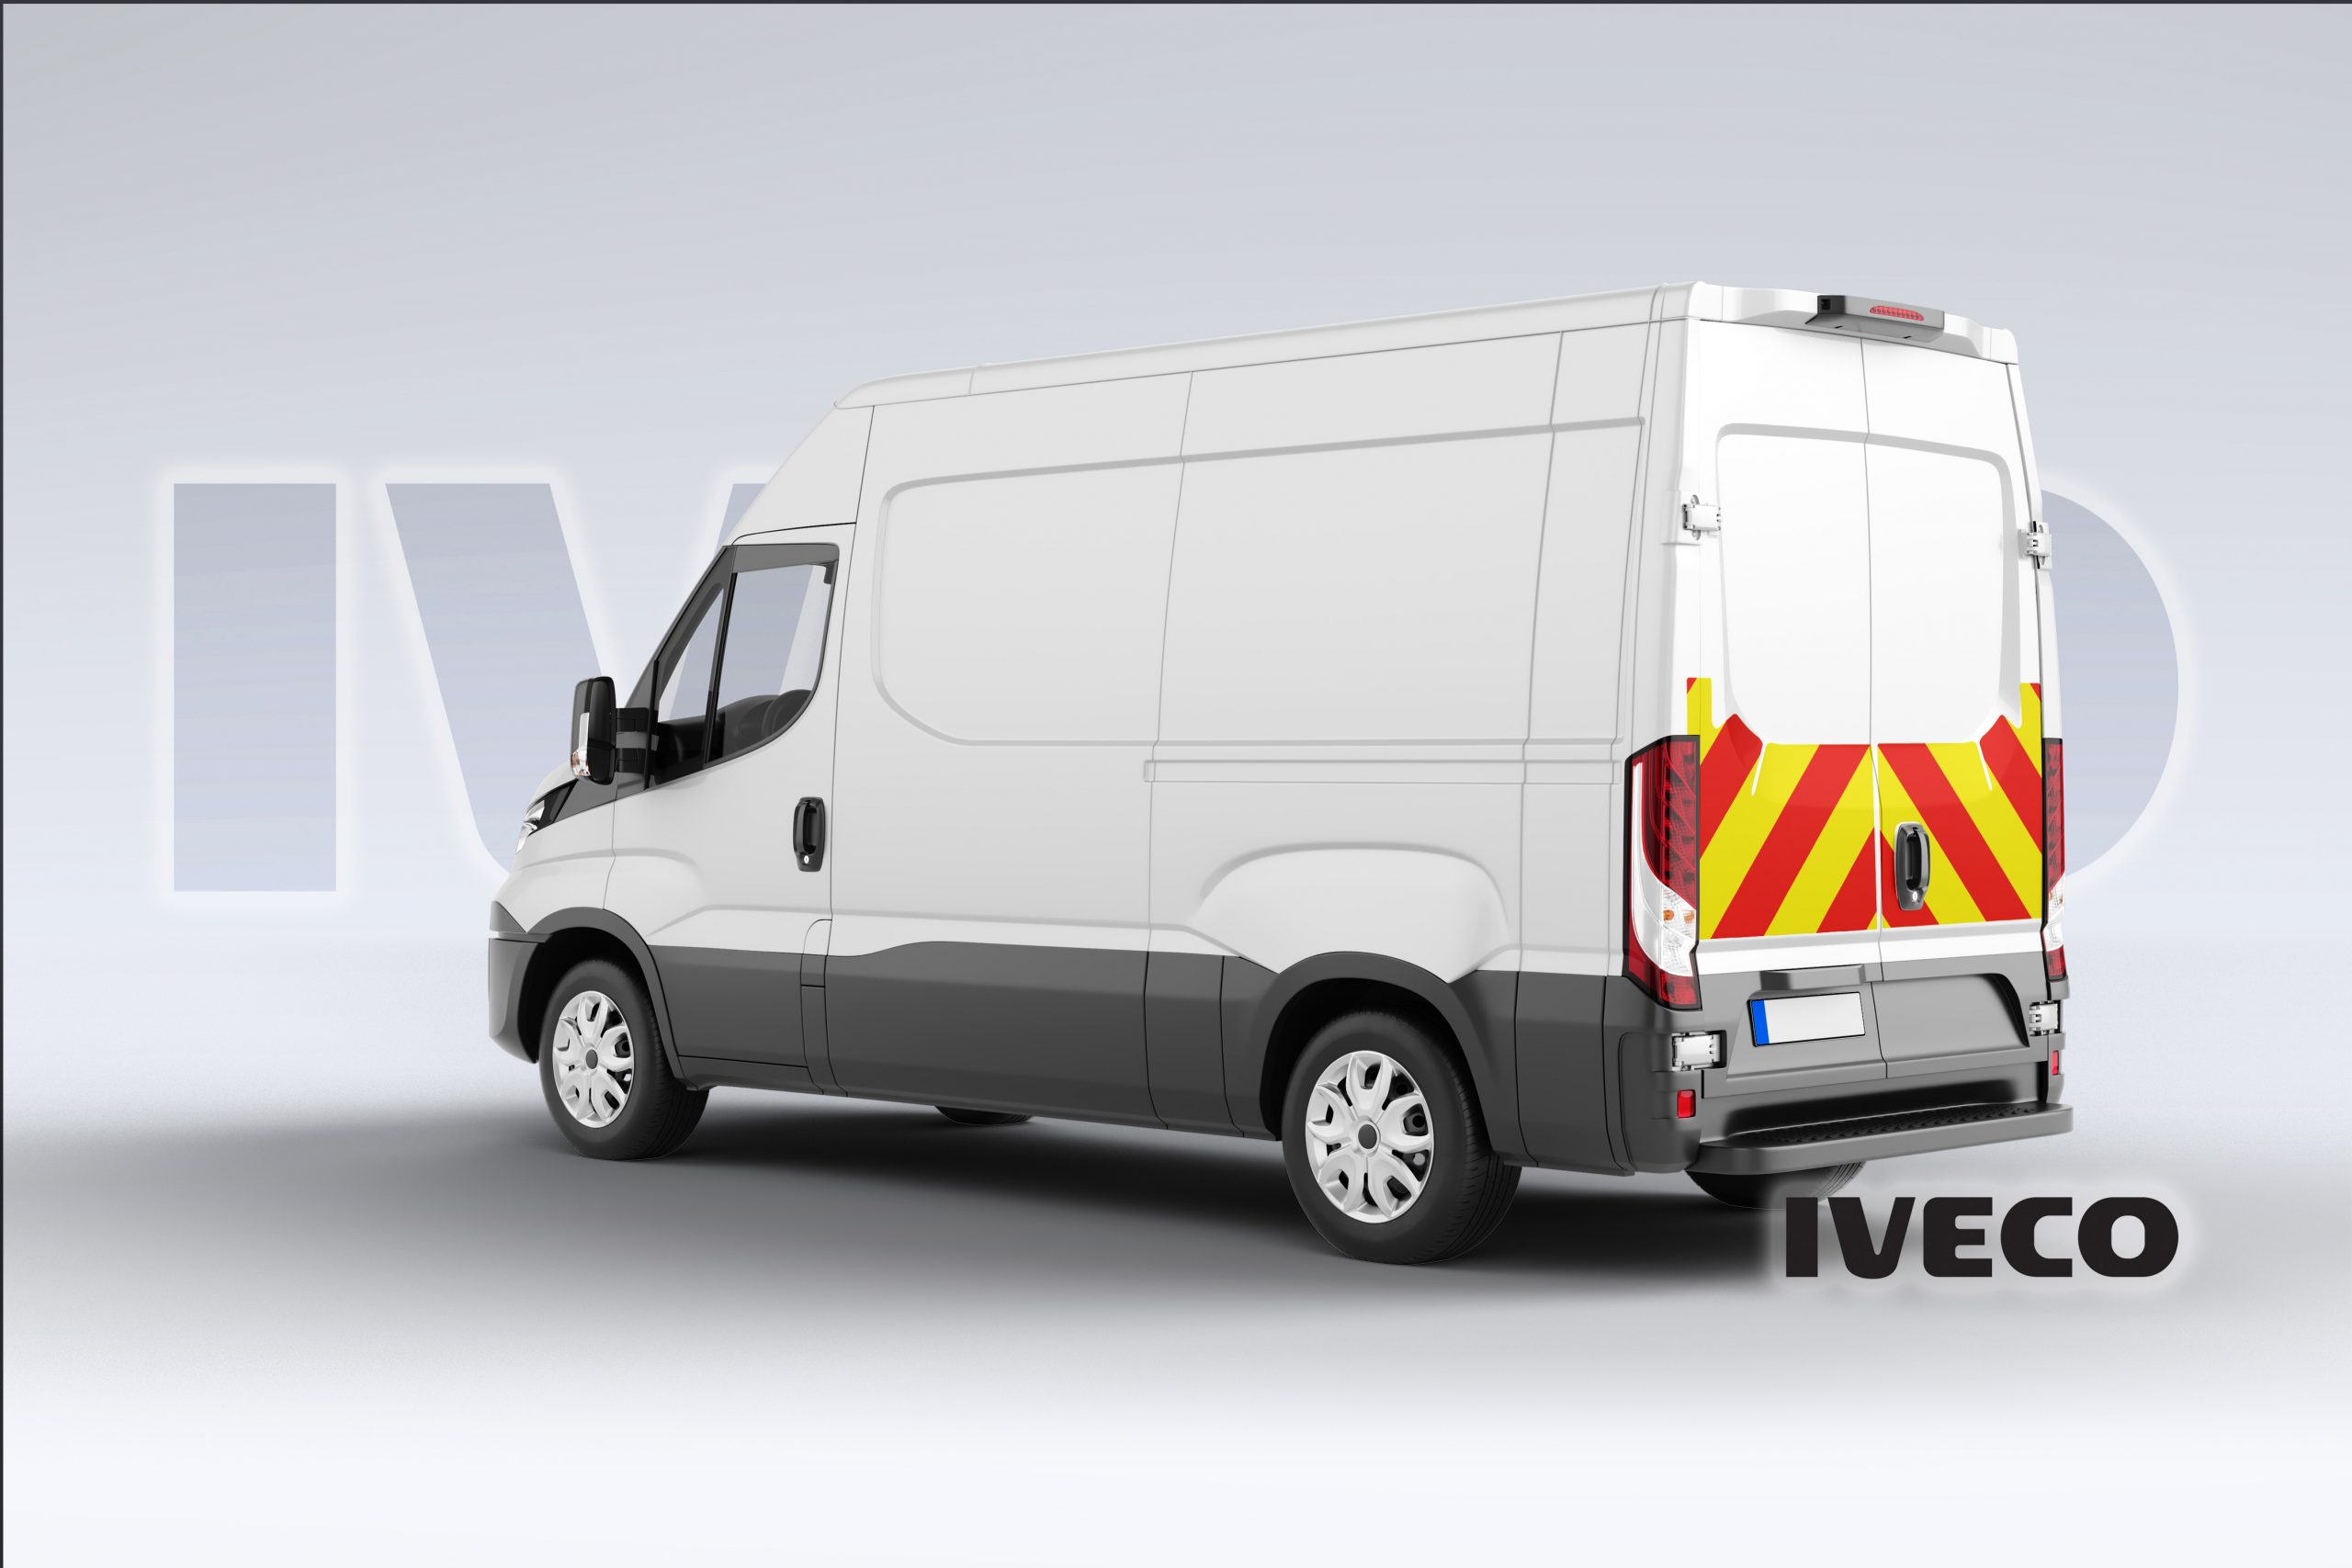 Pic showing angled back view of an Iveco Daily with IM illuminated chevrons fitted